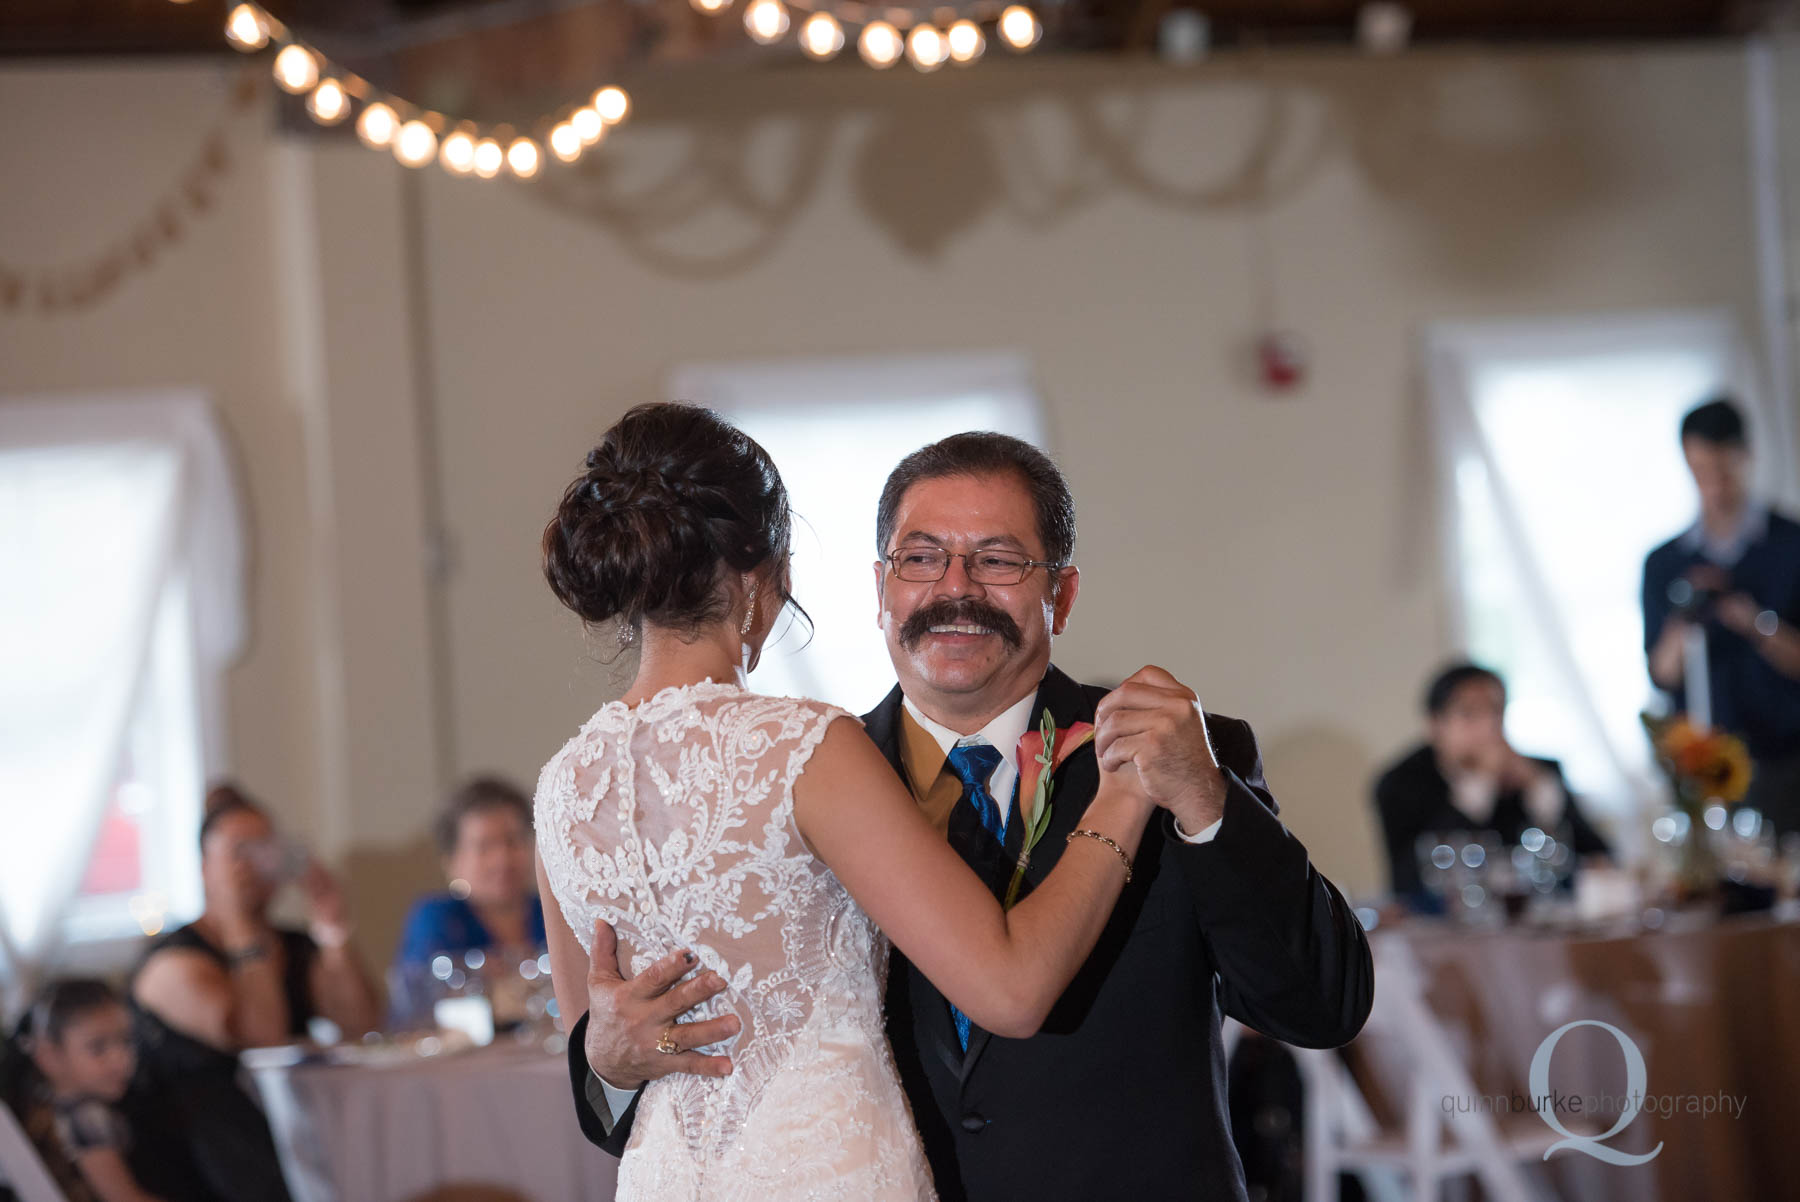 dad dancing with bride daughter during reception at Green Villa Barn